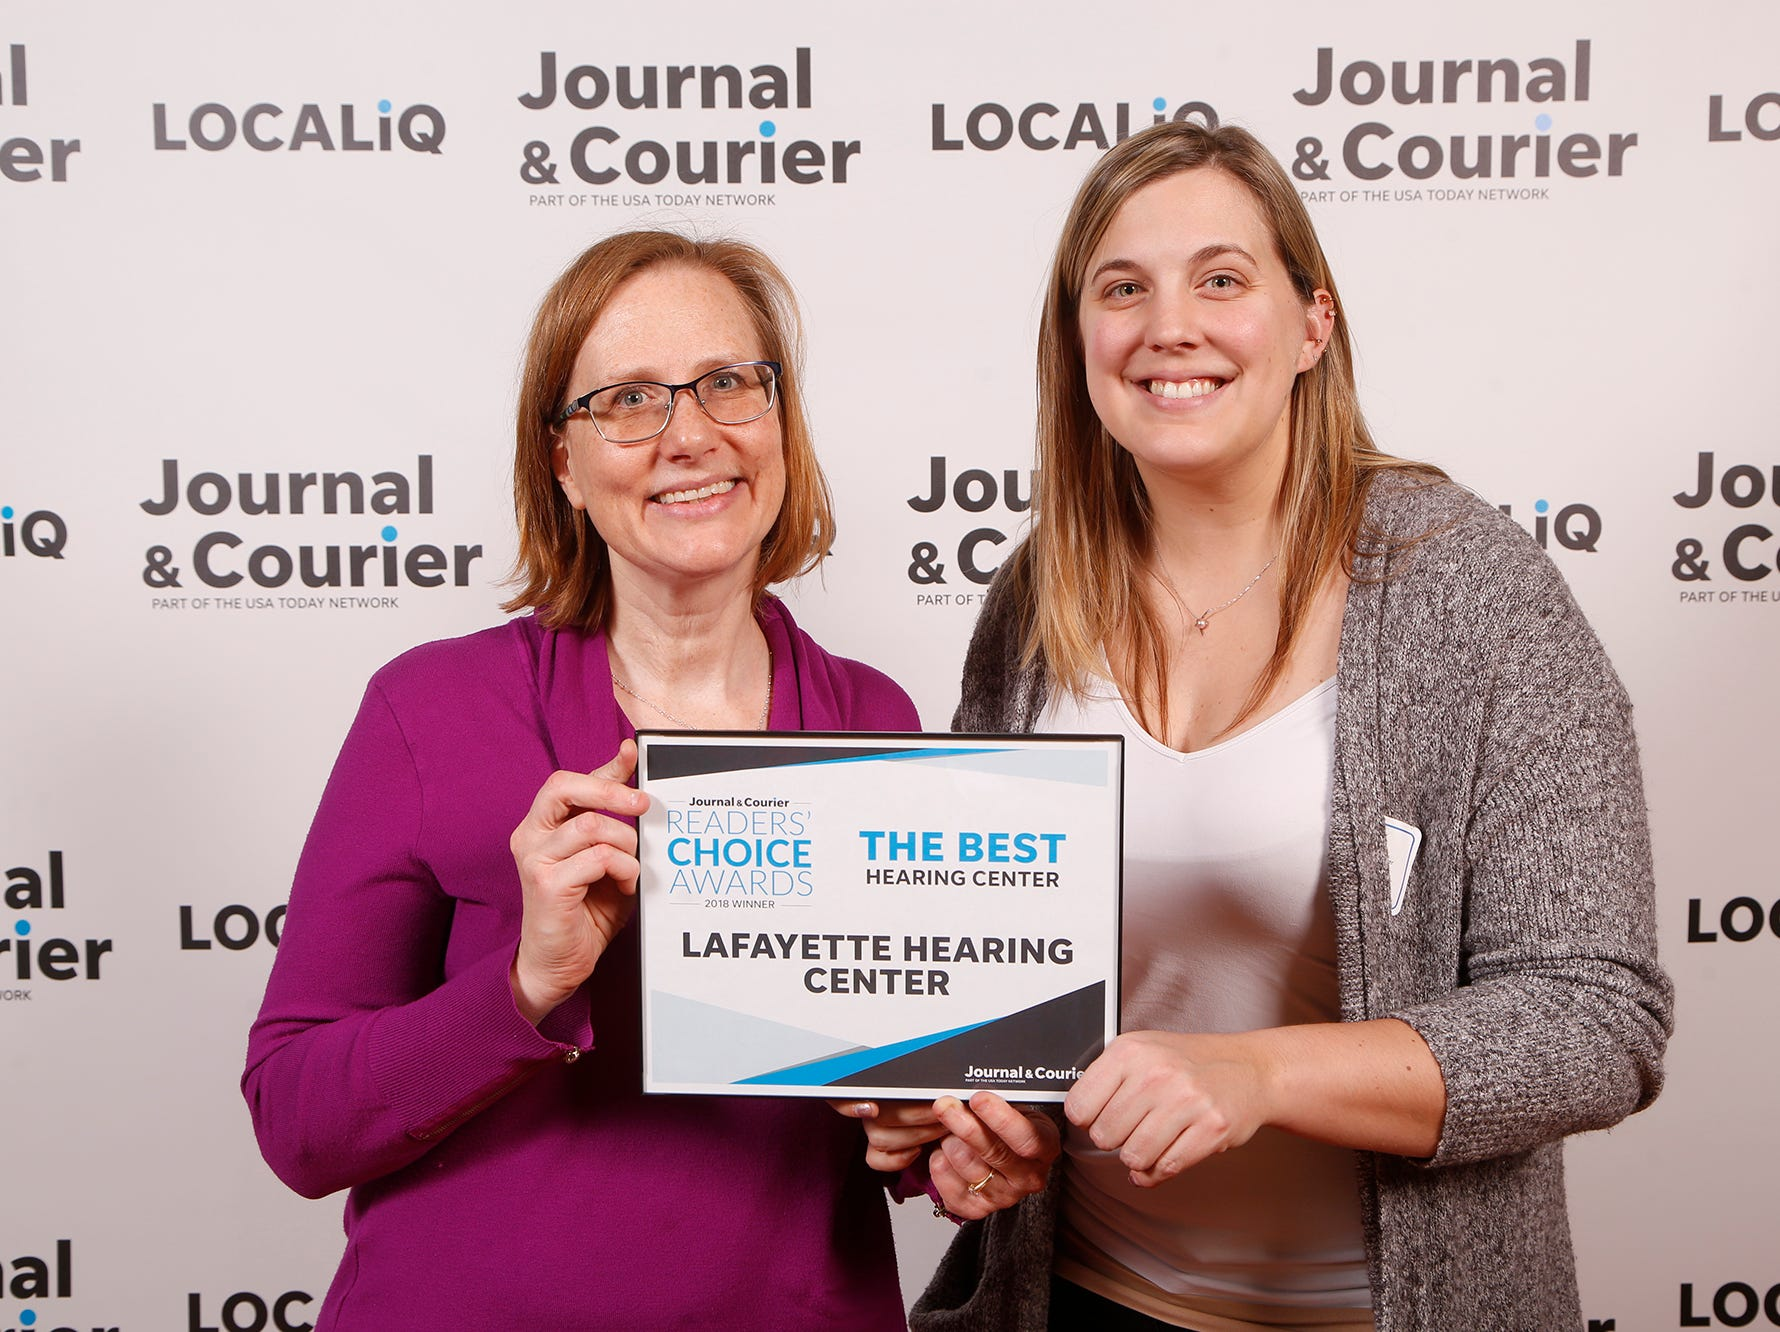 Lafayette Hearing Center, Journal & Courier Readers' Choice Awards winner for the best hearing center.